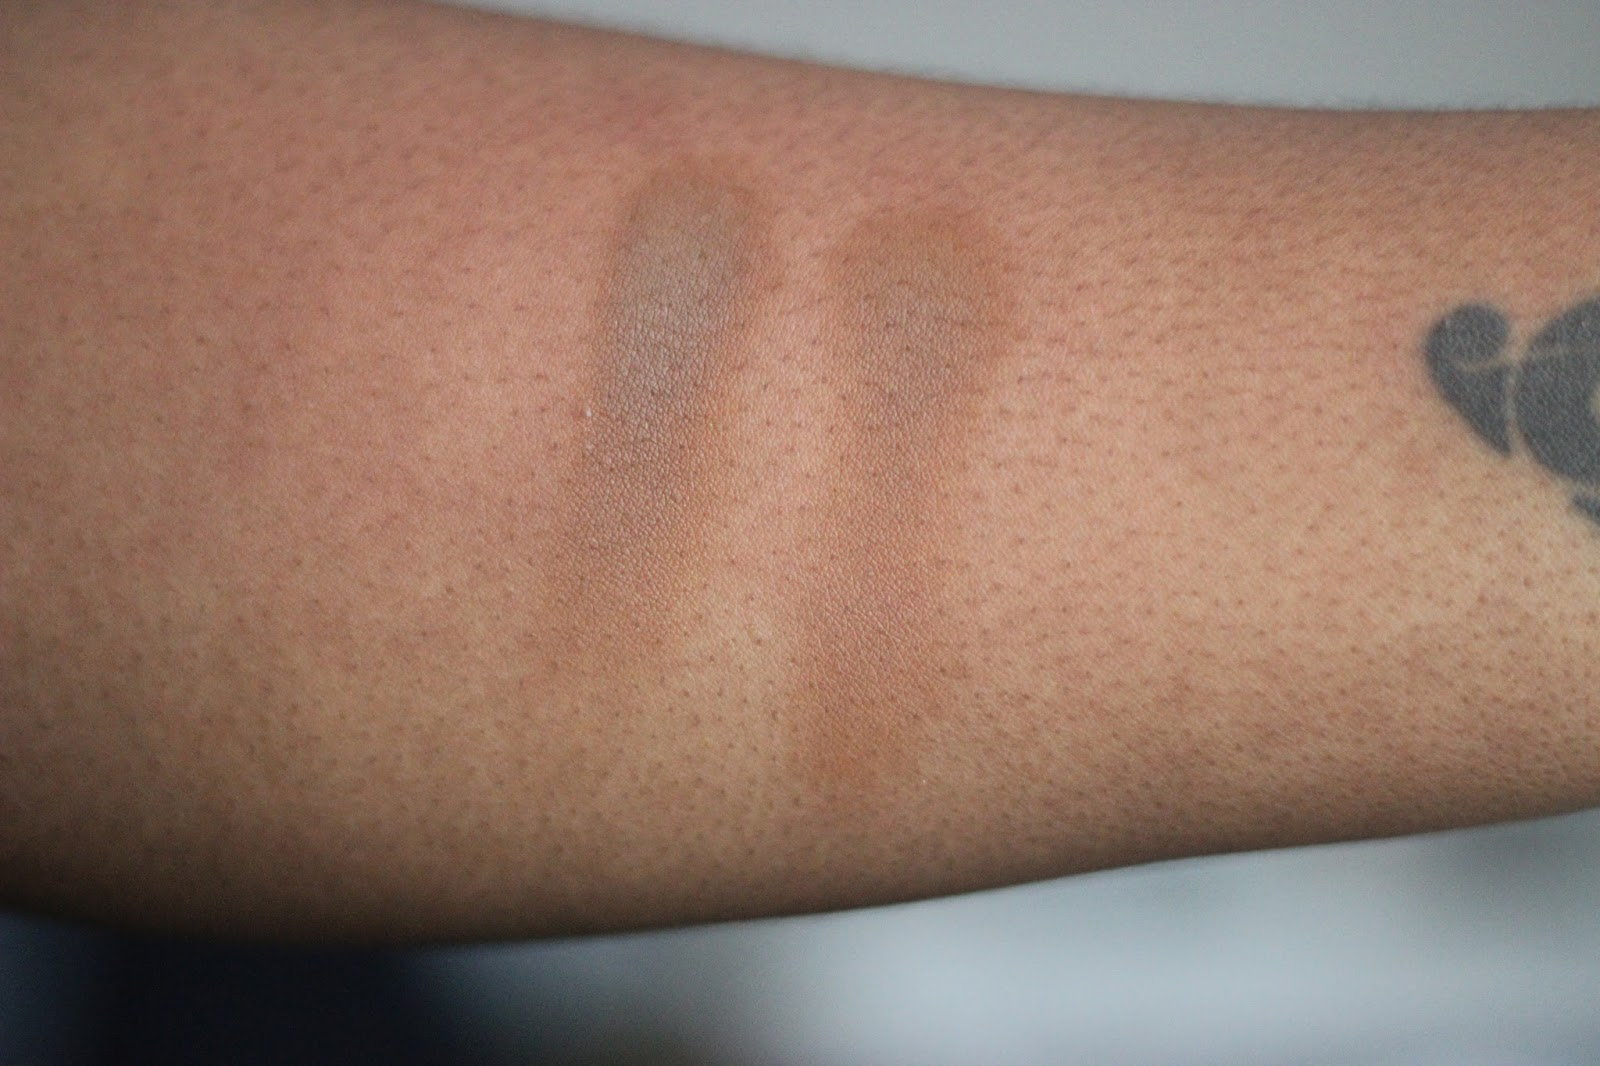 Mac Pro Longwear Eye Shadow Uninterrupted UK Dark Skin Black Beauty Blogger Review Swatches Review Contour